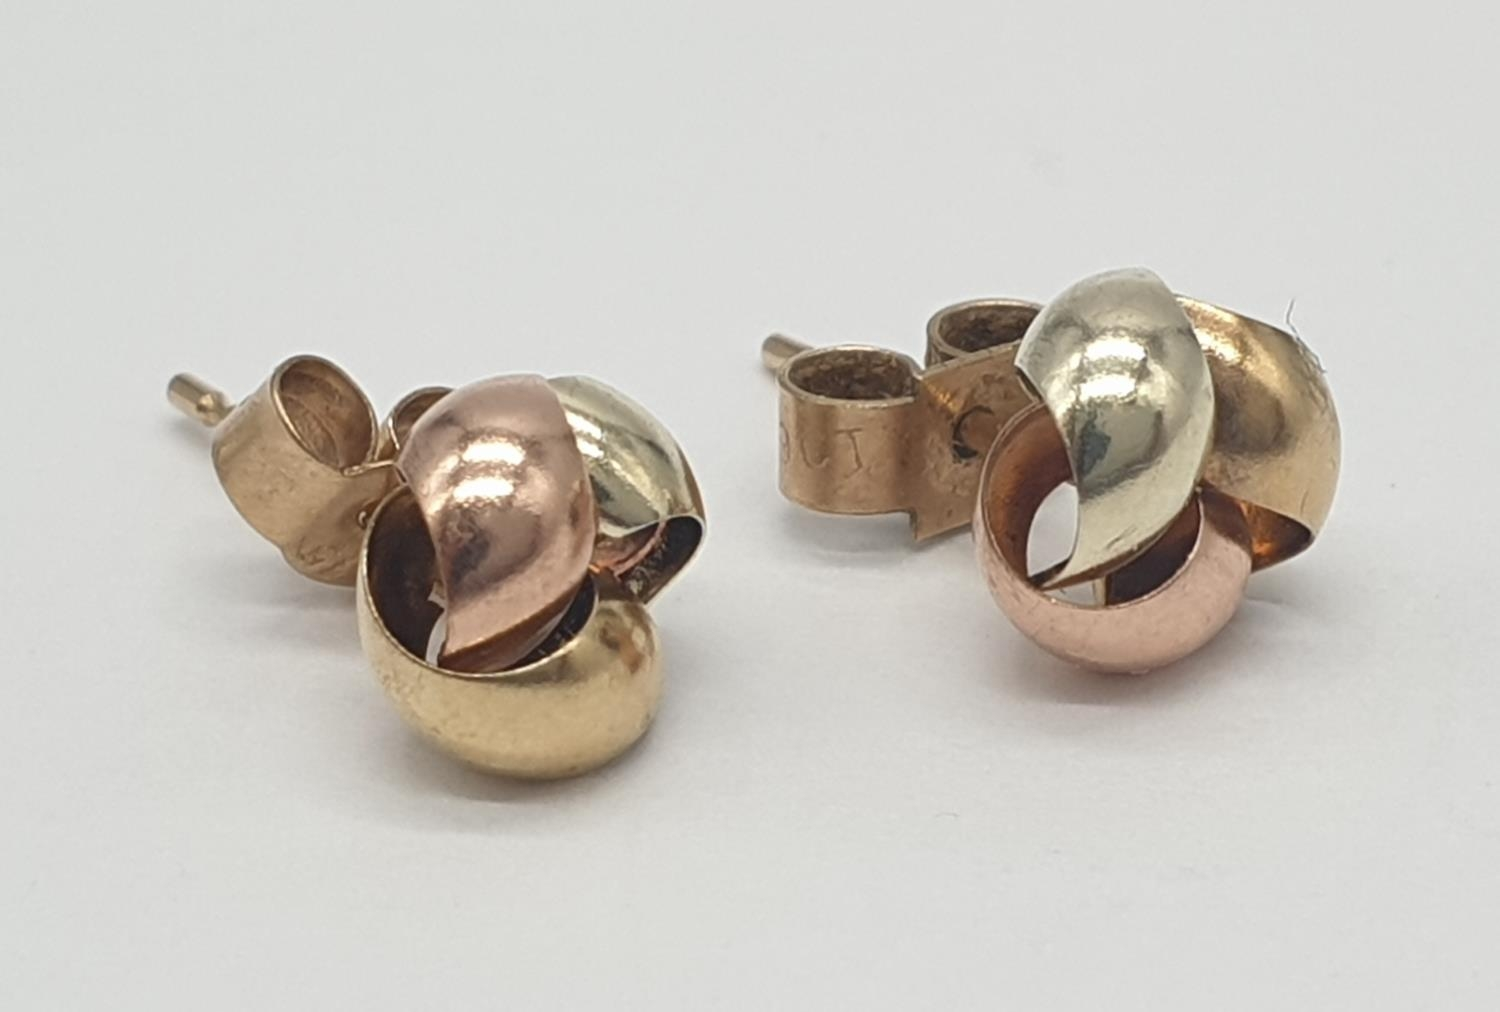 2x pairs of 9ct gold earrings (2) - Image 4 of 5